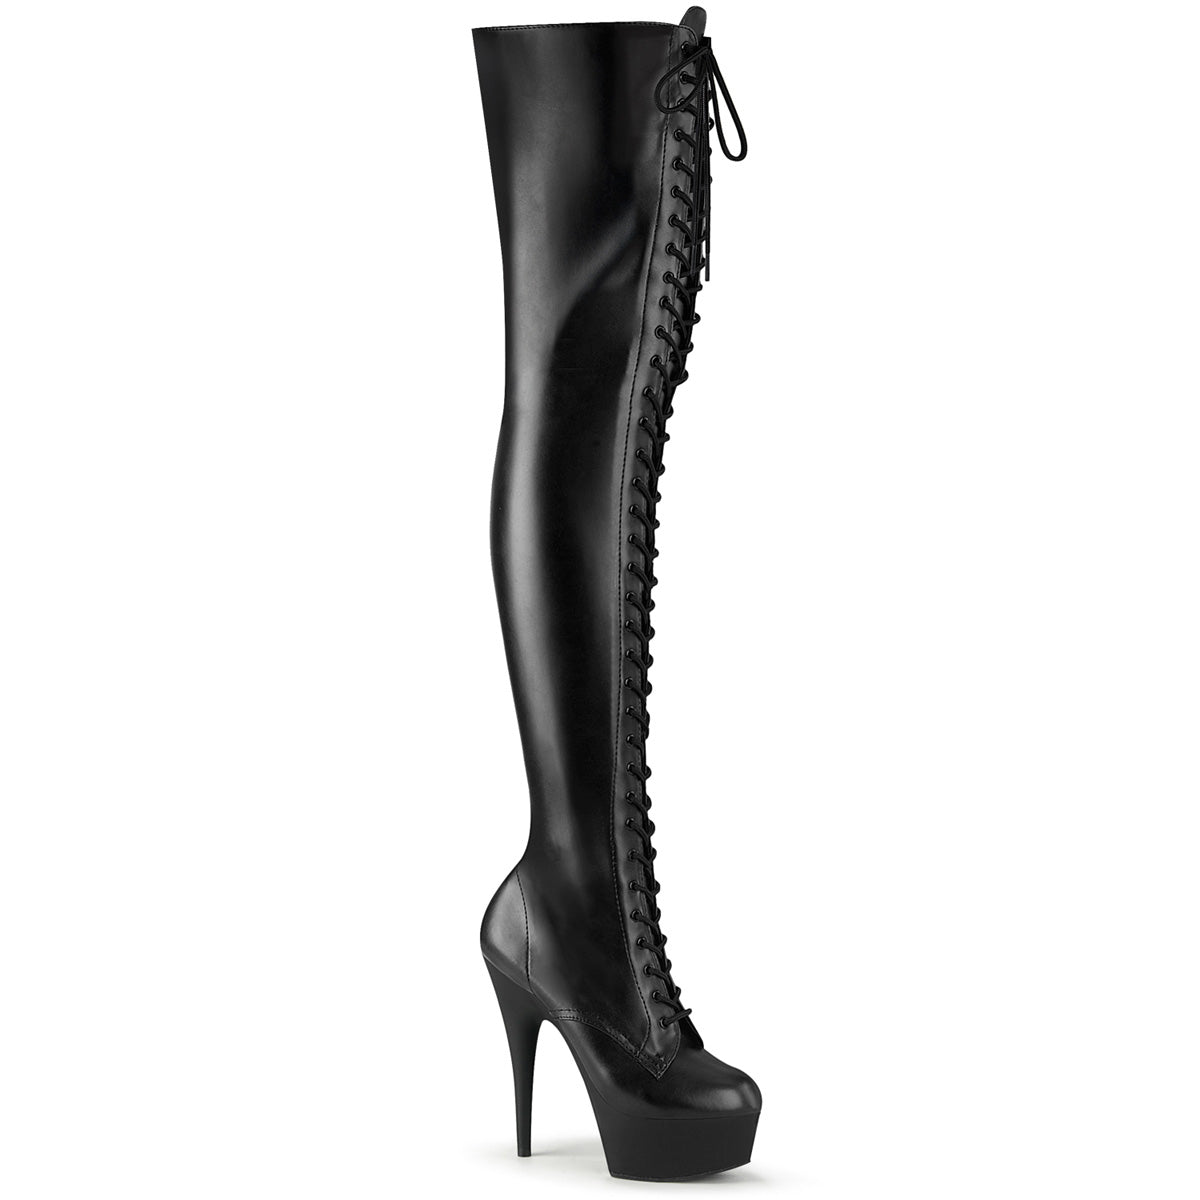 "6"" Heel, 1 3/4"" PF Lace-Up Stretch Thigh Boot, Side Zip"